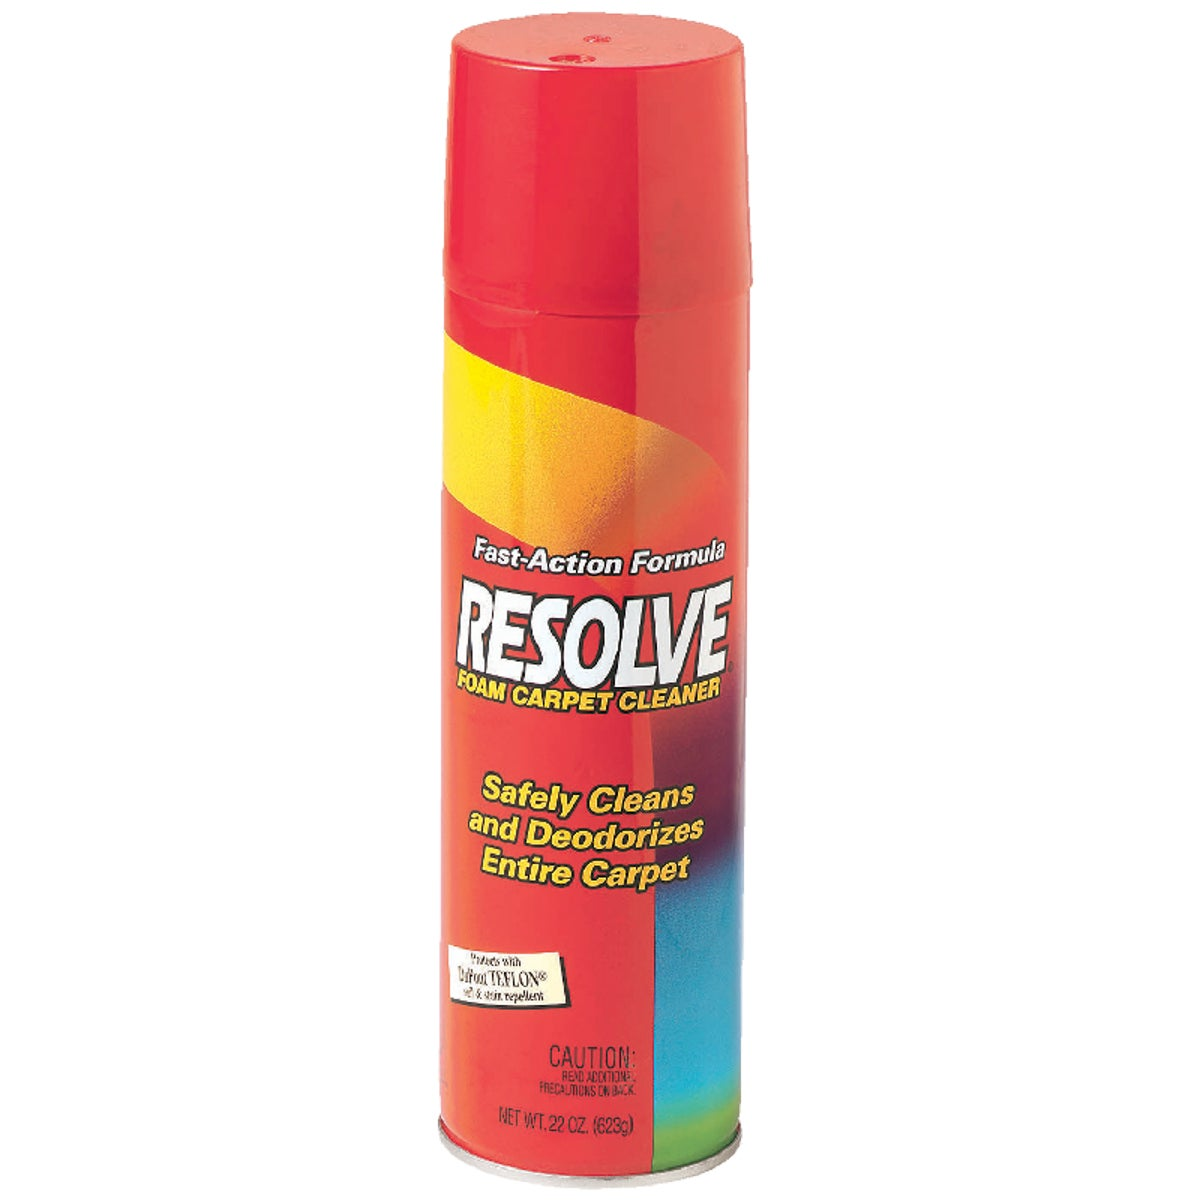 22OZ RESOLVE CLEANER - 1920000706 by Reckitt Benckiser